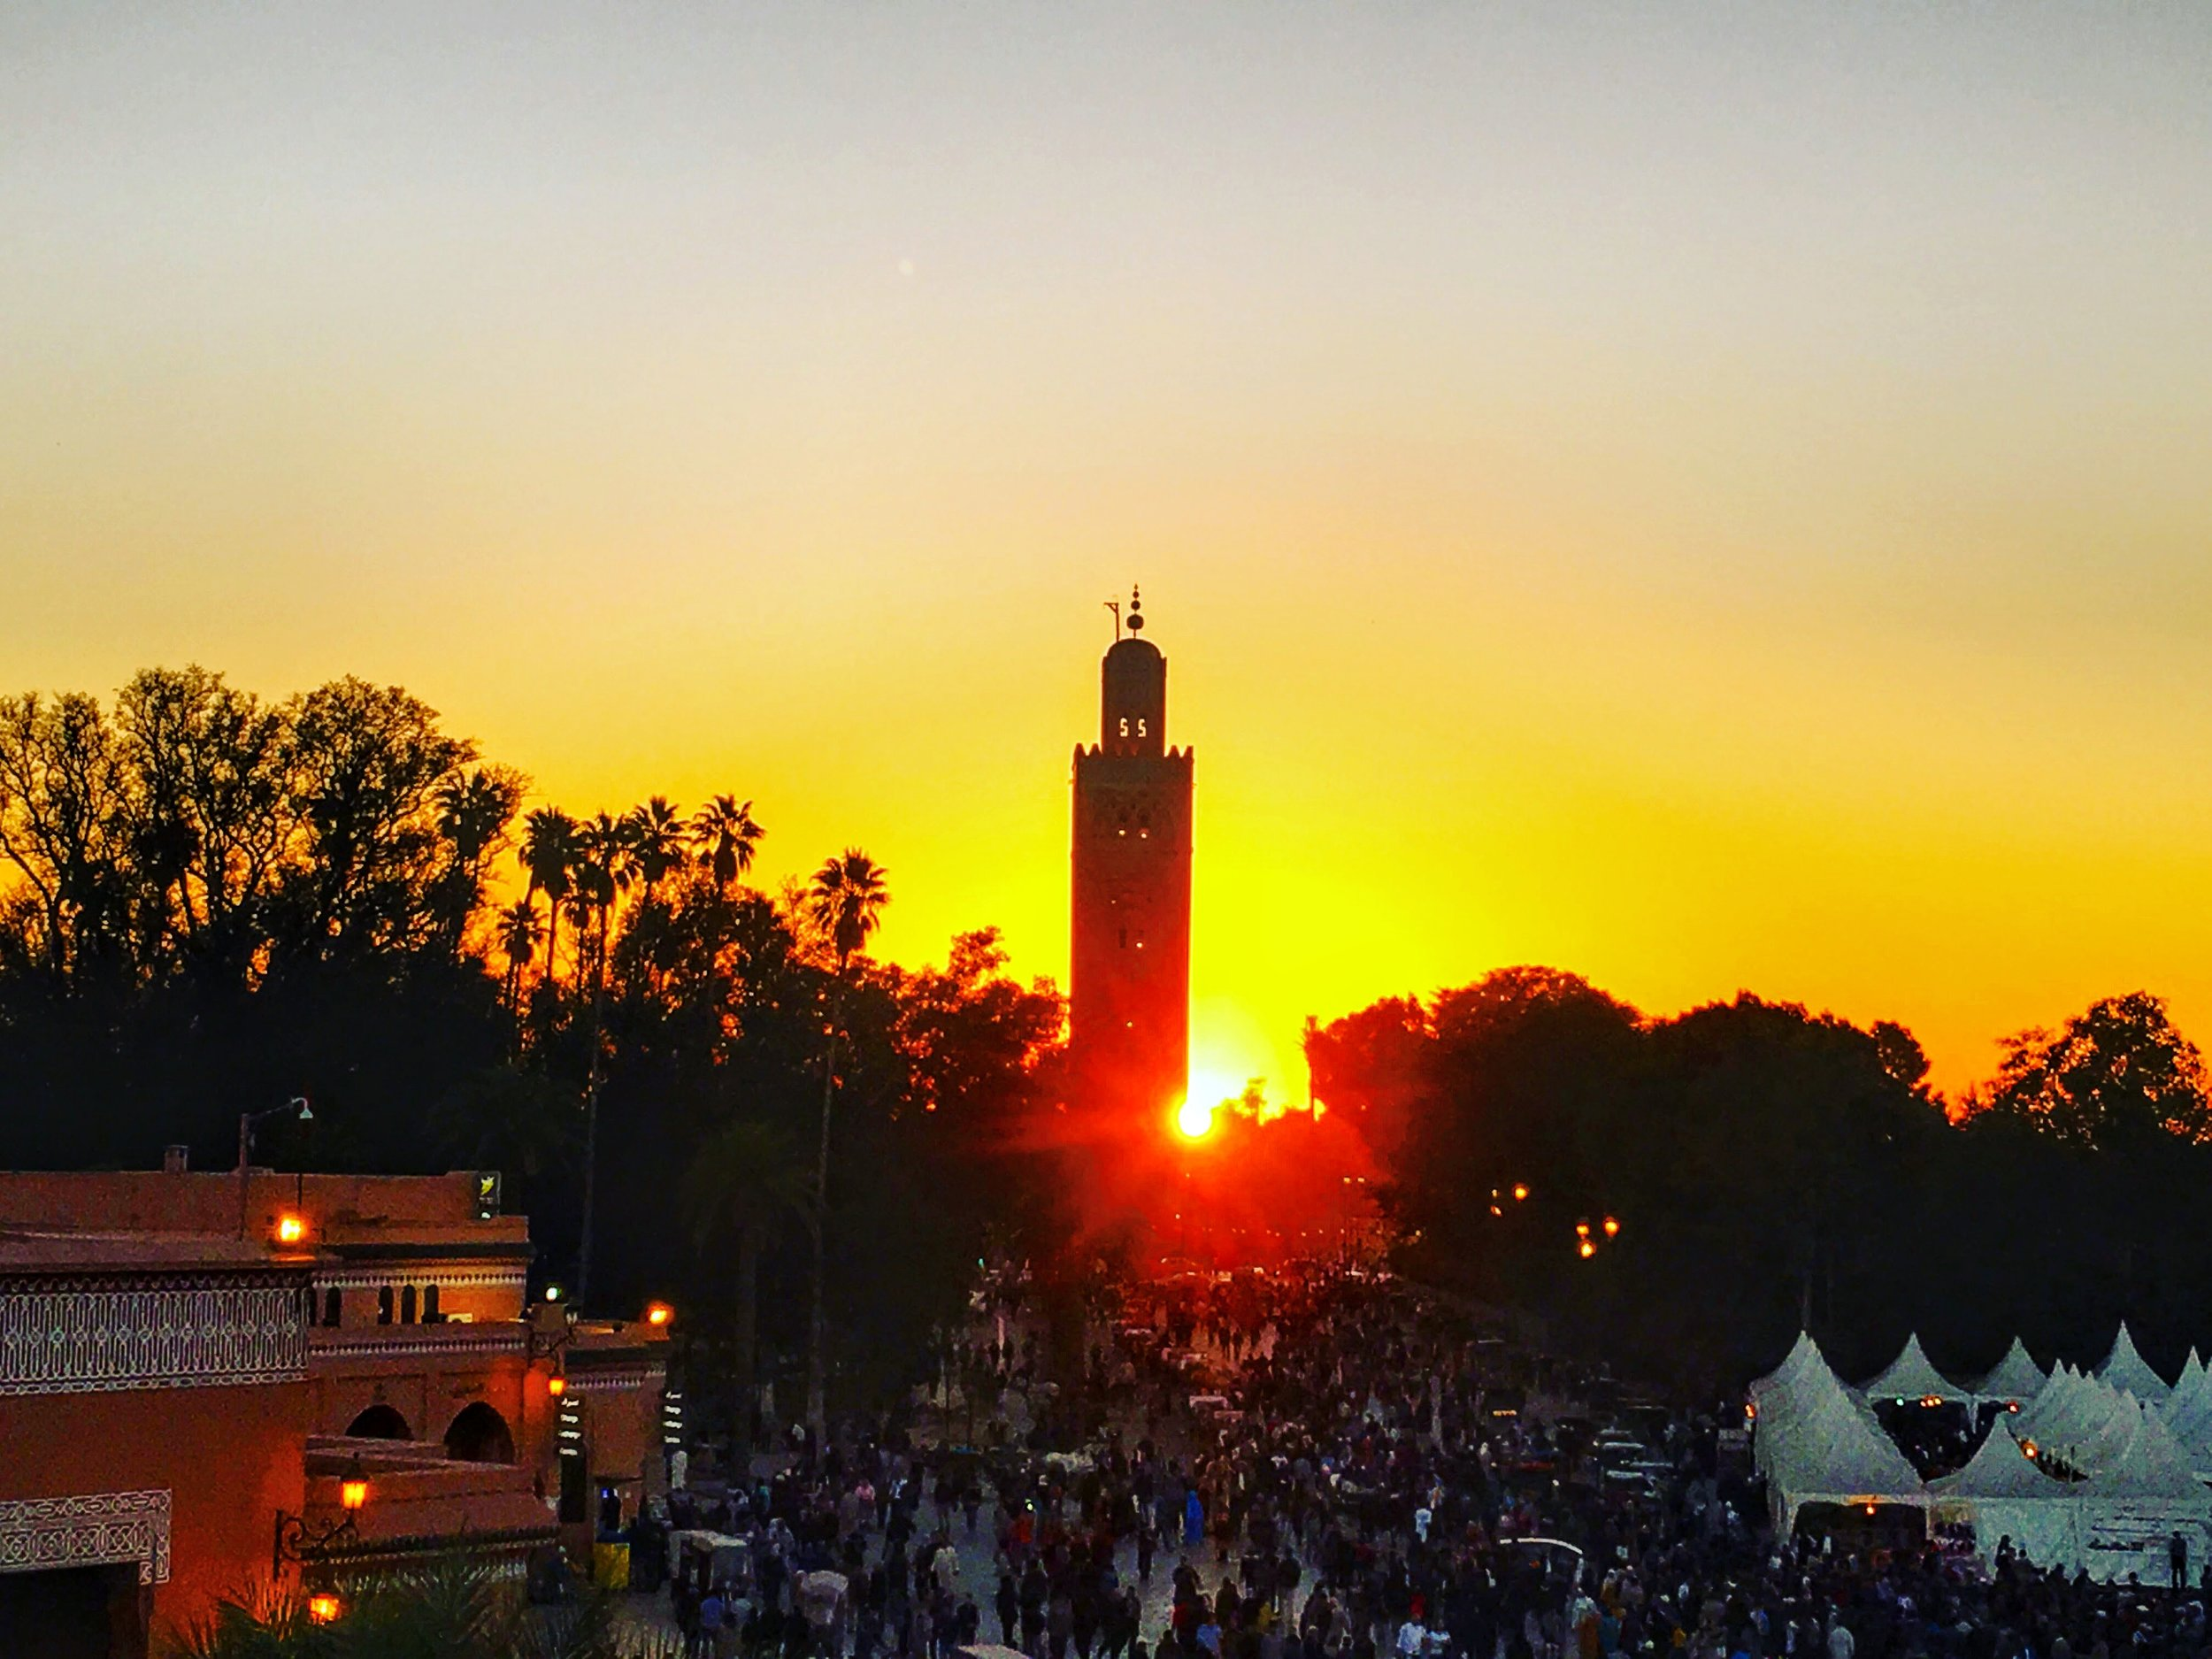 Sunset in Marrakesh